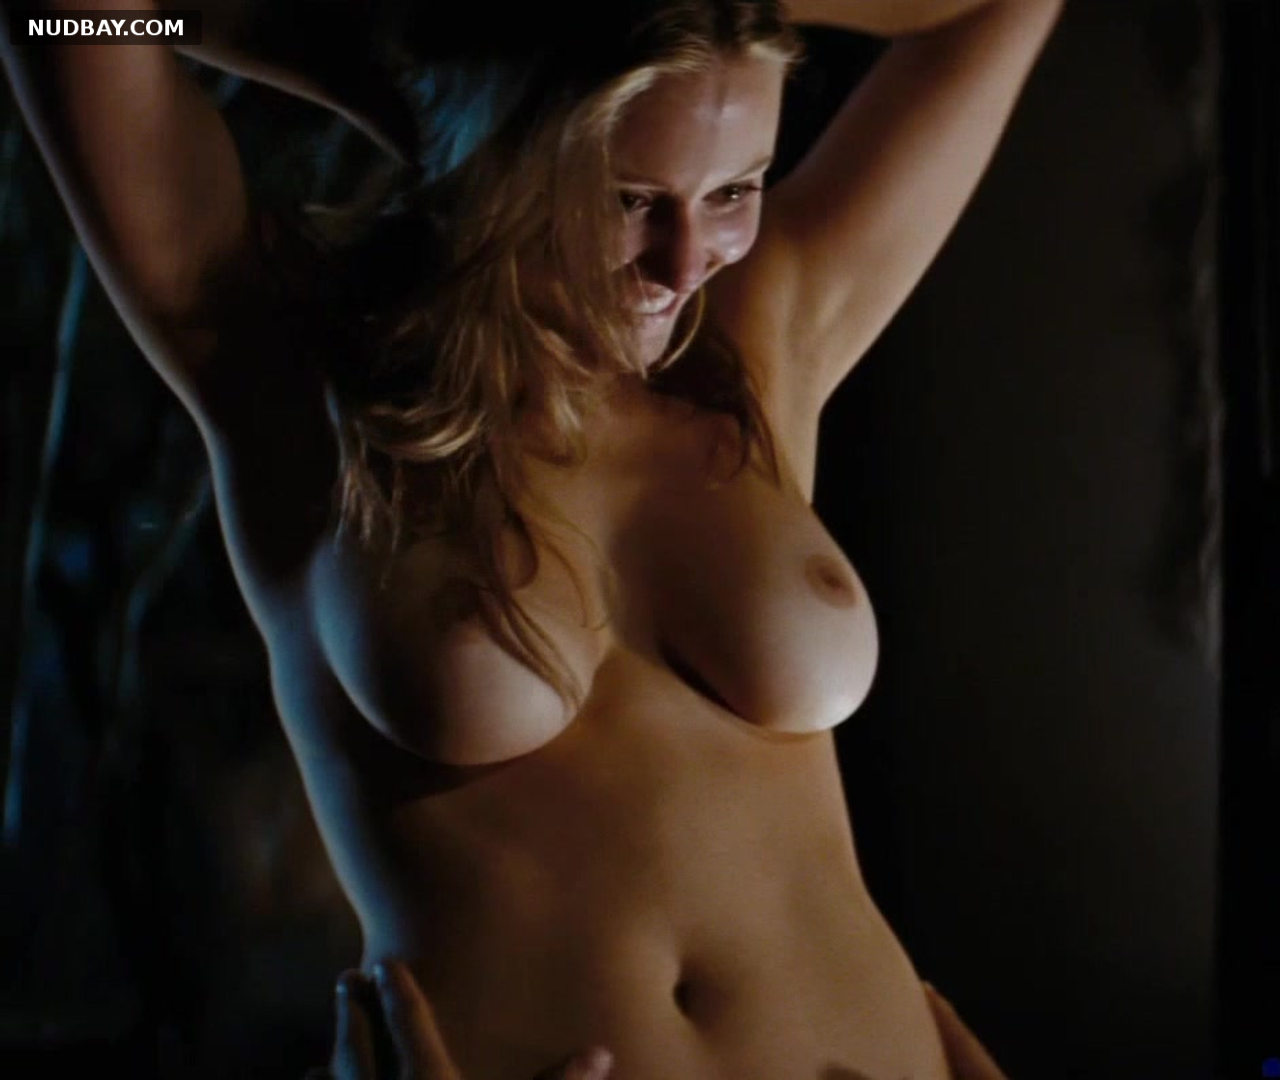 Julianna Guill nude boobs in Friday The 13th (2009)